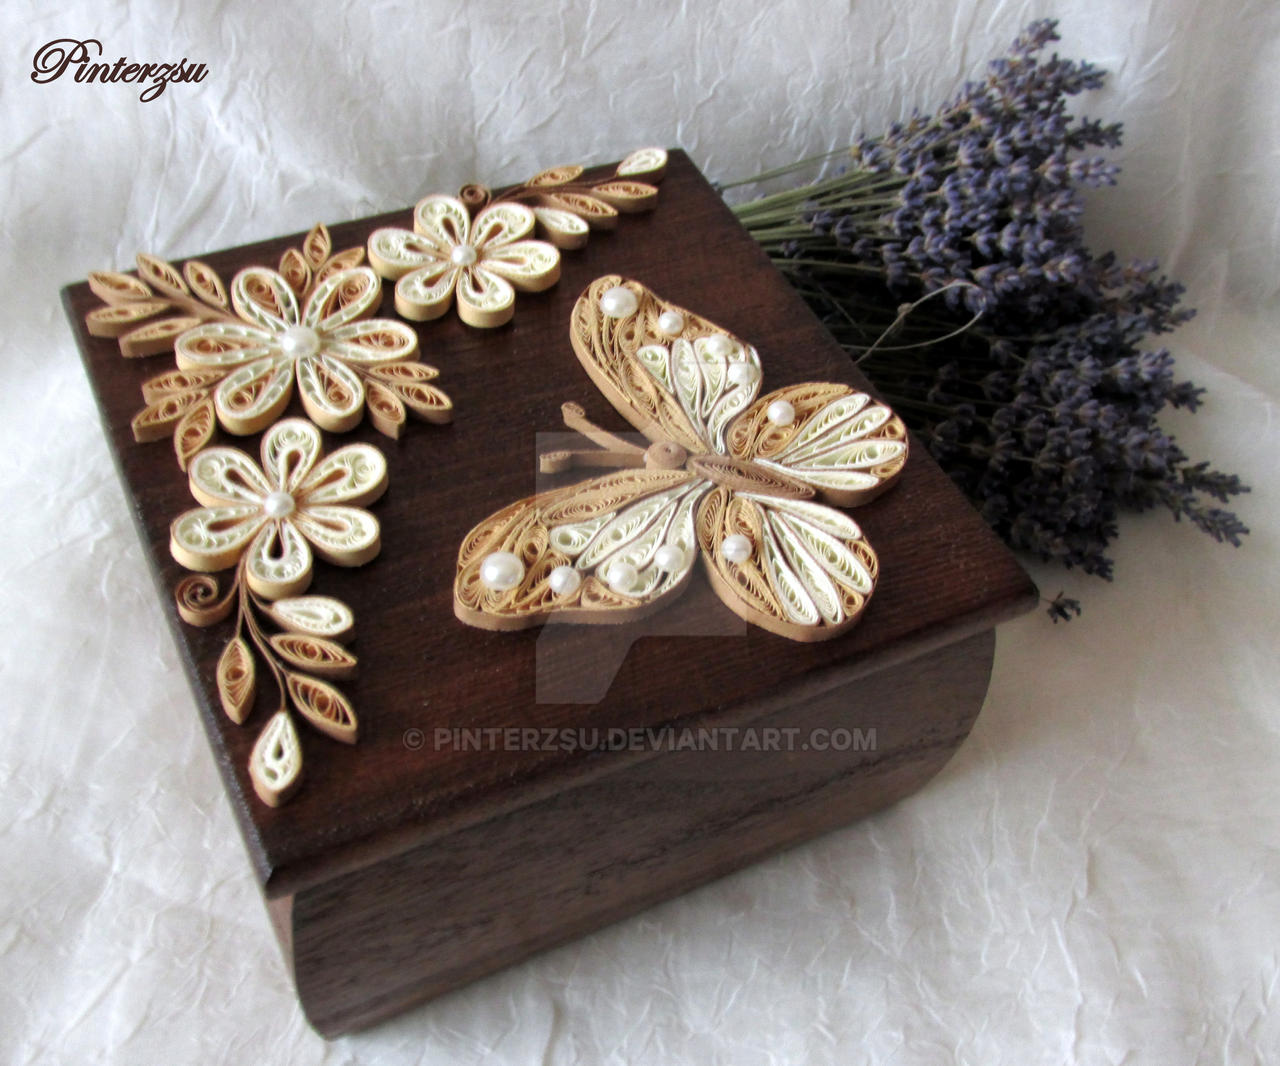 Quilled box by pinterzsu